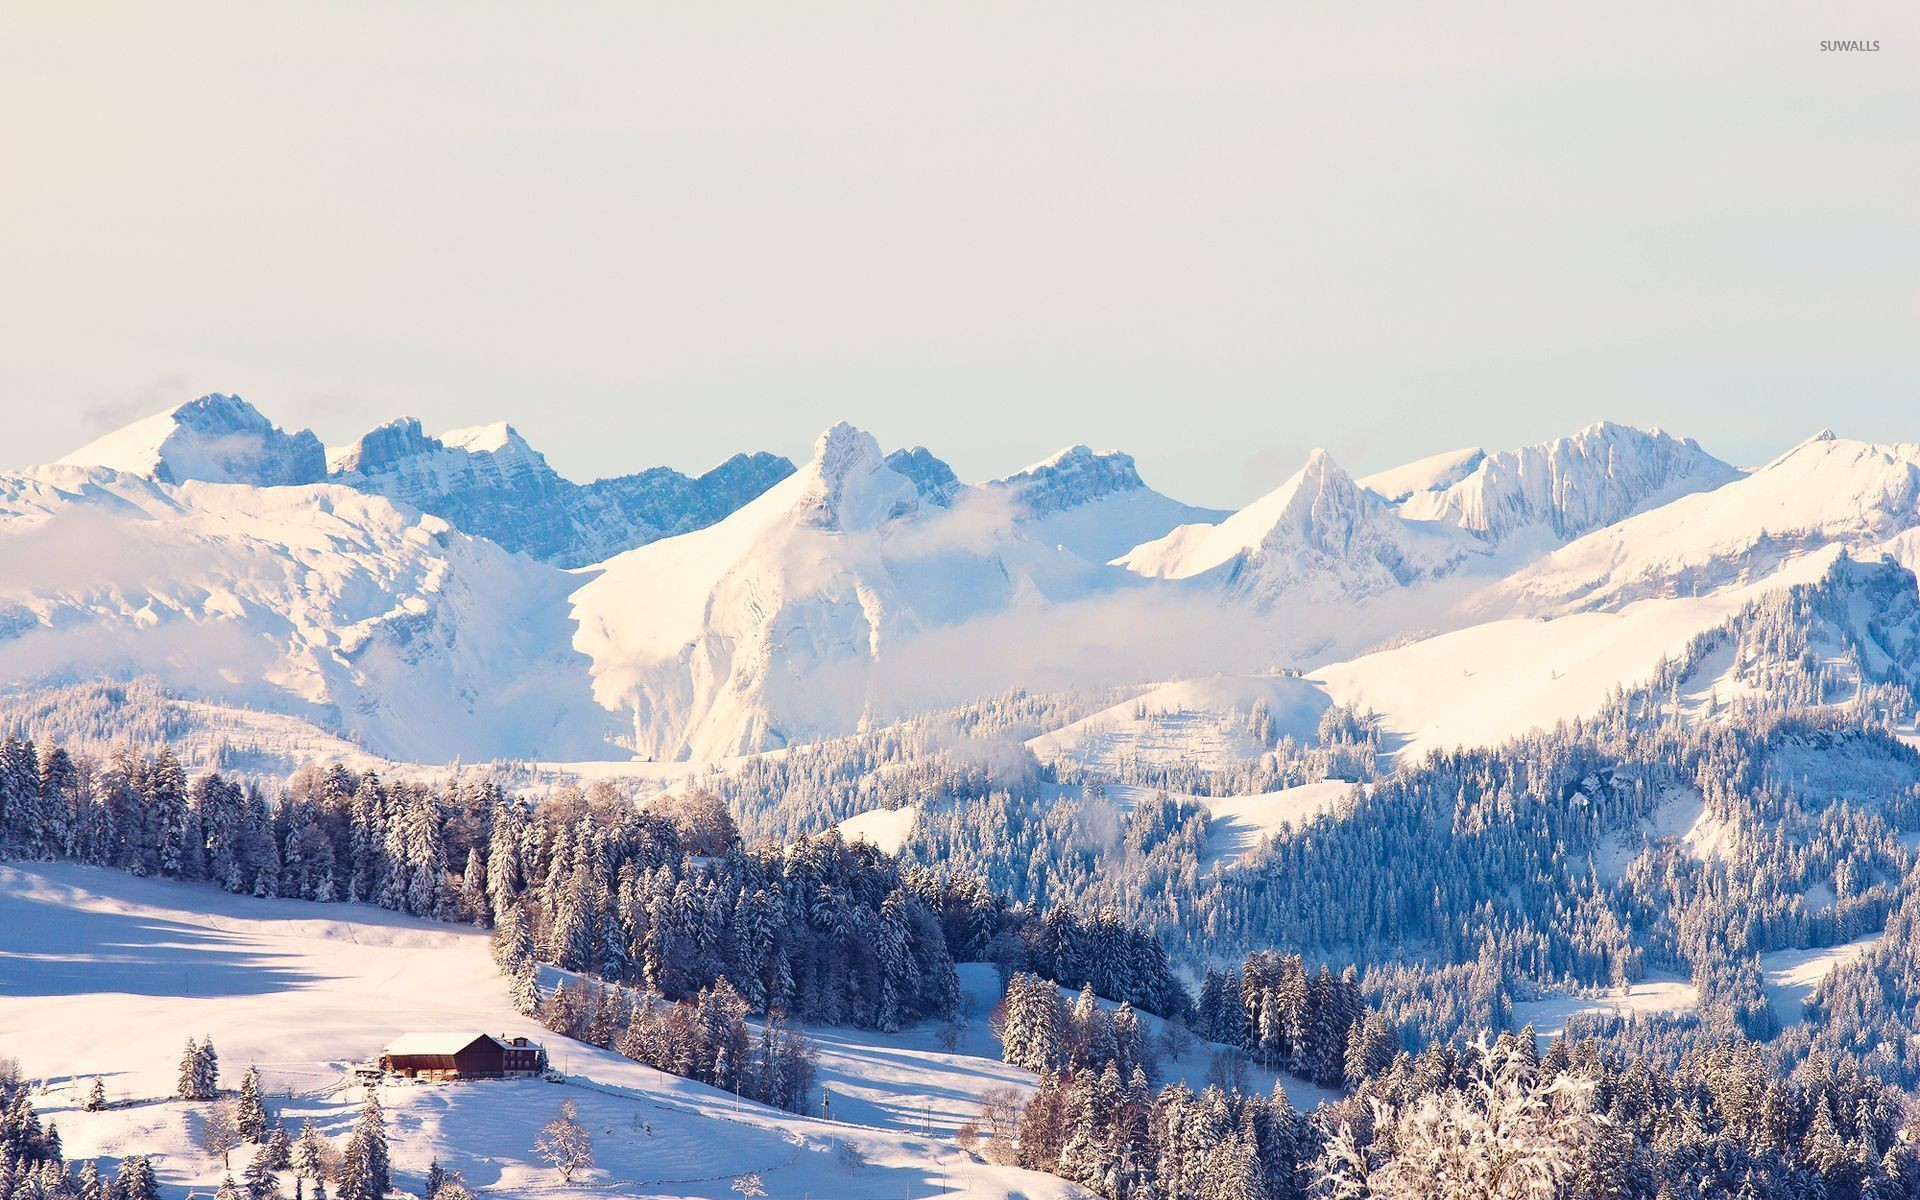 Sunny Snowy Mountains wallpapers (37 Wallpapers)